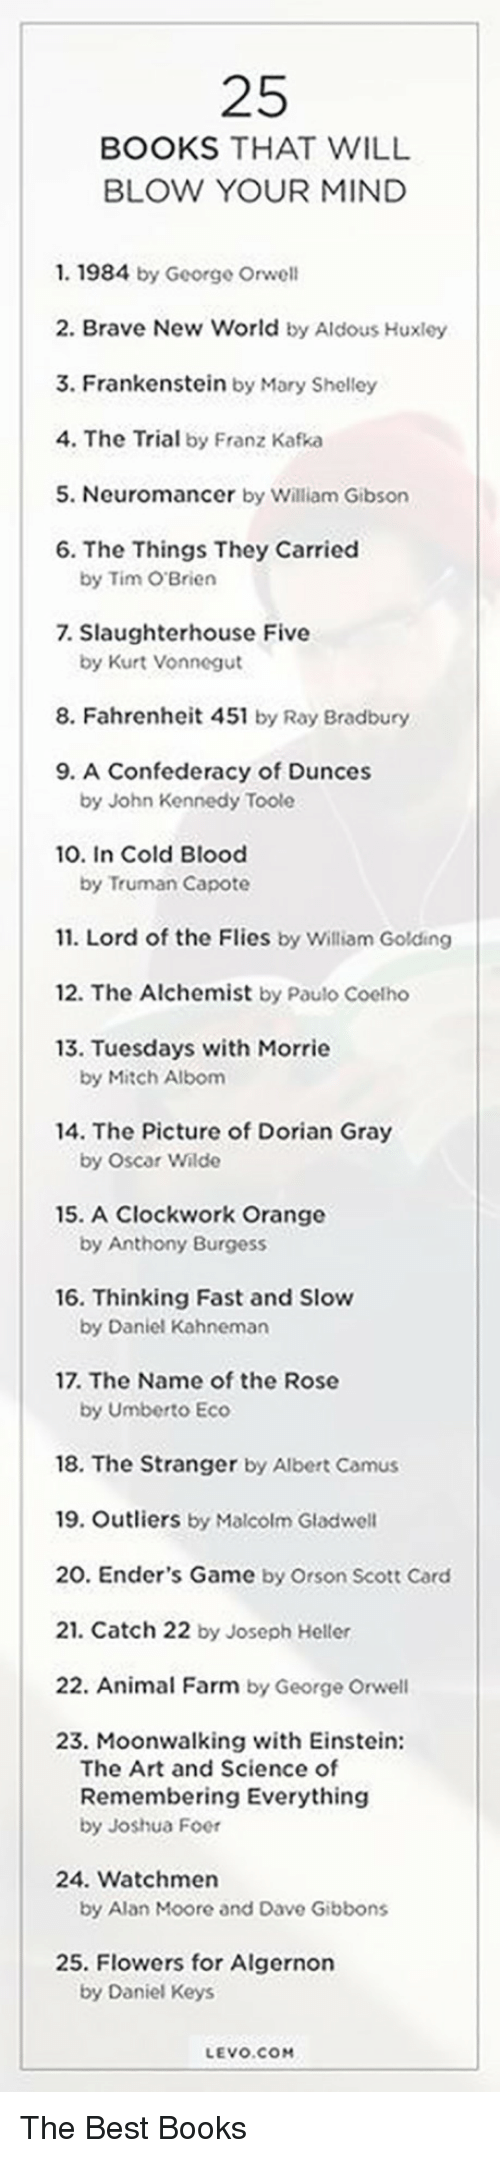 mitch albom: 25  BOOKS THAT WILL  BLOW YOUR MIND  1. 1984 by George Orwell  2. Brave New World by Aldous Huxley  3. Frankenstein by Mary Shelley  4. The Trial by Franz Kafka  5. Neuromancer by William Gibson  6. The Things They Carried  by Tim O'Brien  7. Slaughterhouse Five  by Kurt Vonnegut  8. Fahrenheit 451 by Ray Bradbury  9. A Confederacy of Dunces  by John Kennedy Toole  0. In Cold Blood  by Truman Capote  11. Lord of the Flies by William Golding  12. The Alchemist by Paulo Coelho  13. Tuesdays with Morrie  by Mitch Albom  14. The Picture of Dorian Gray  by Oscar Wilde  15. A Clockwork Orange  by Anthony Burgess  16. Thinking Fast and Slow  by Daniel Kahneman  17. The Name of the Rose  by Umberto Eco  18. The Stranger by Albert Camus  19. Outliers by Malcolm Gladwell  20. Ender's Game by Orson Scott Card  21. Catch 22 by Joseph Heller  22. Animal Farm by George Orwell  23. Moonwalking with Einstein:  The Art and Science of  Remembering Everything  by Joshua Foer  24. Watchmen  by Alan Moore and Dave Gibbons  25. Flowers for Algernon  by Daniel Keys  LEVO.COM <p>The Best Books</p>